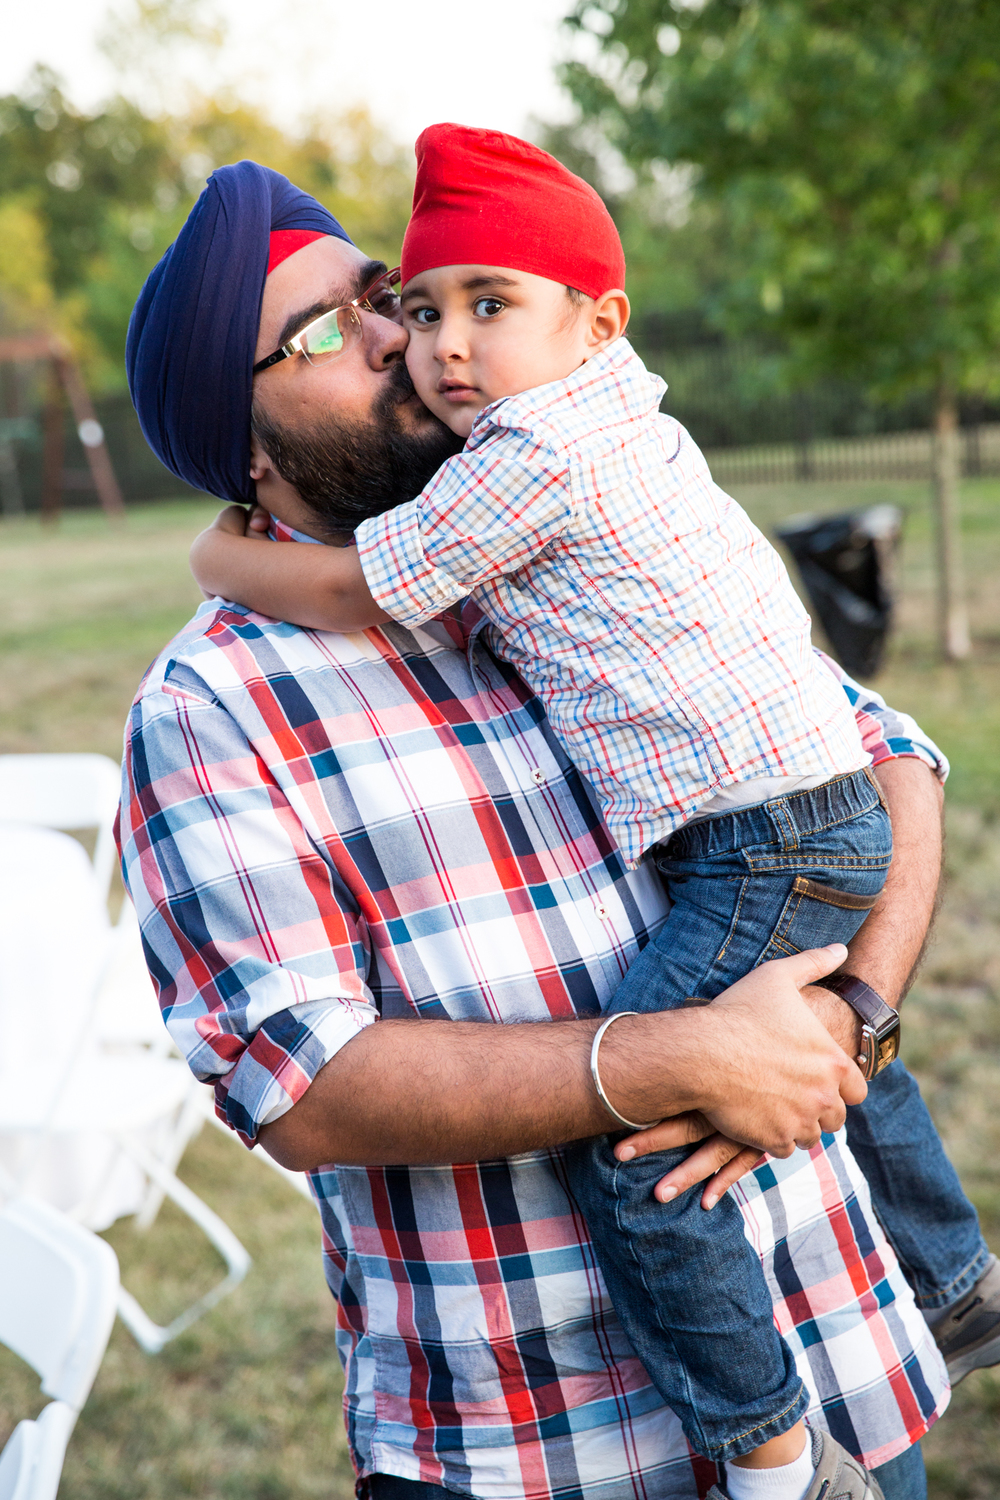 20-William Hendra Photography Singh Graduation Party.jpg